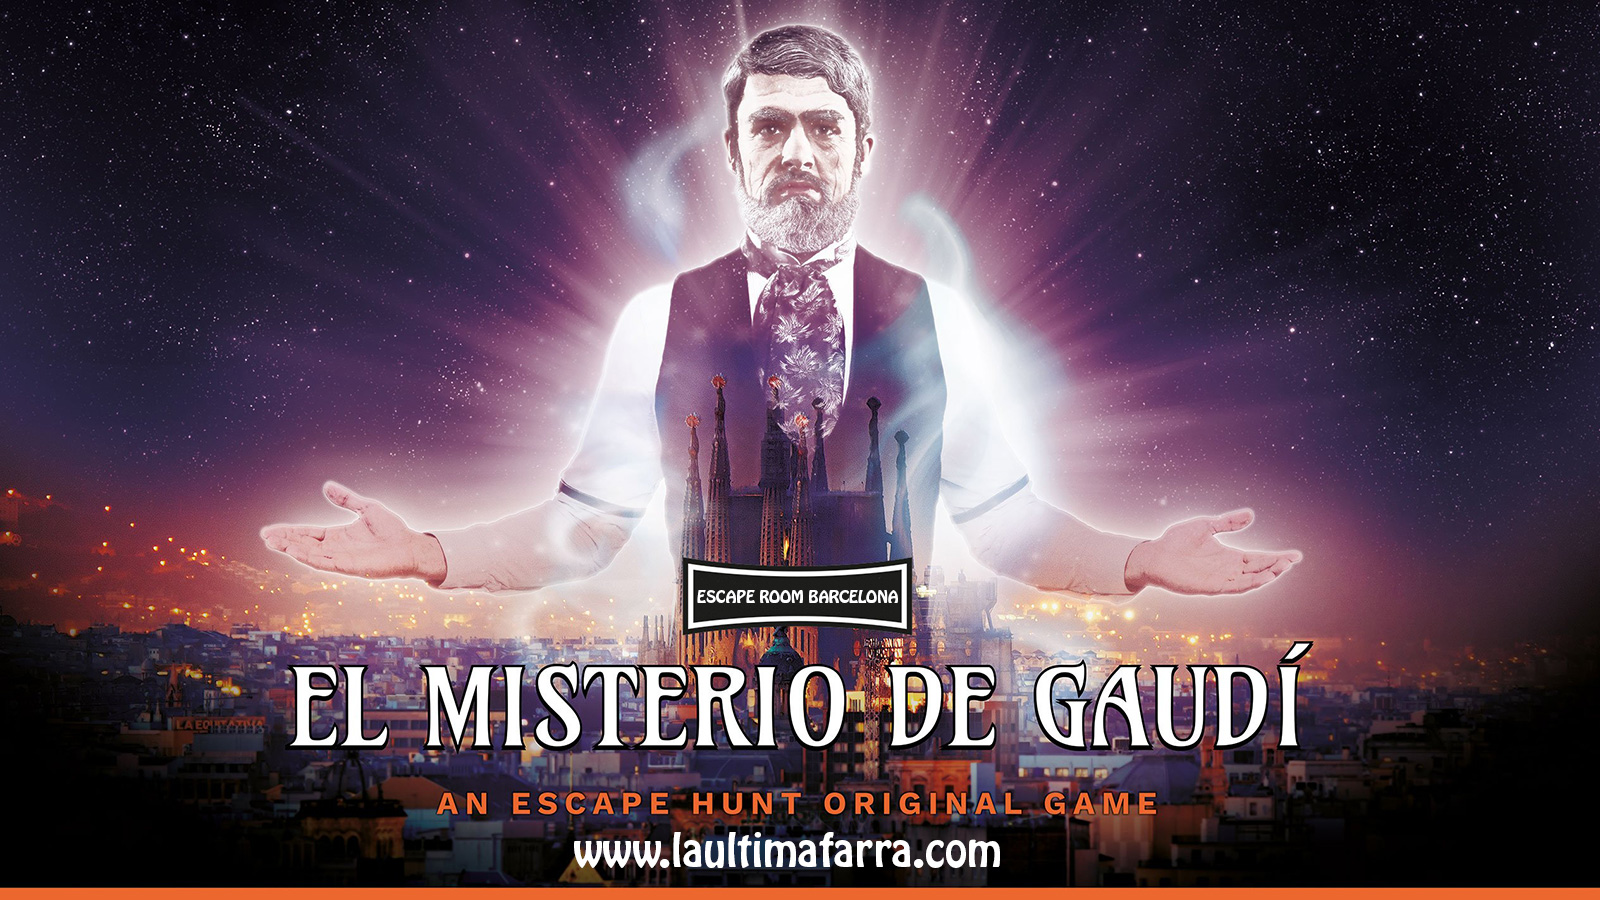 Escape Room Barcelona - Misterio de Gaudí